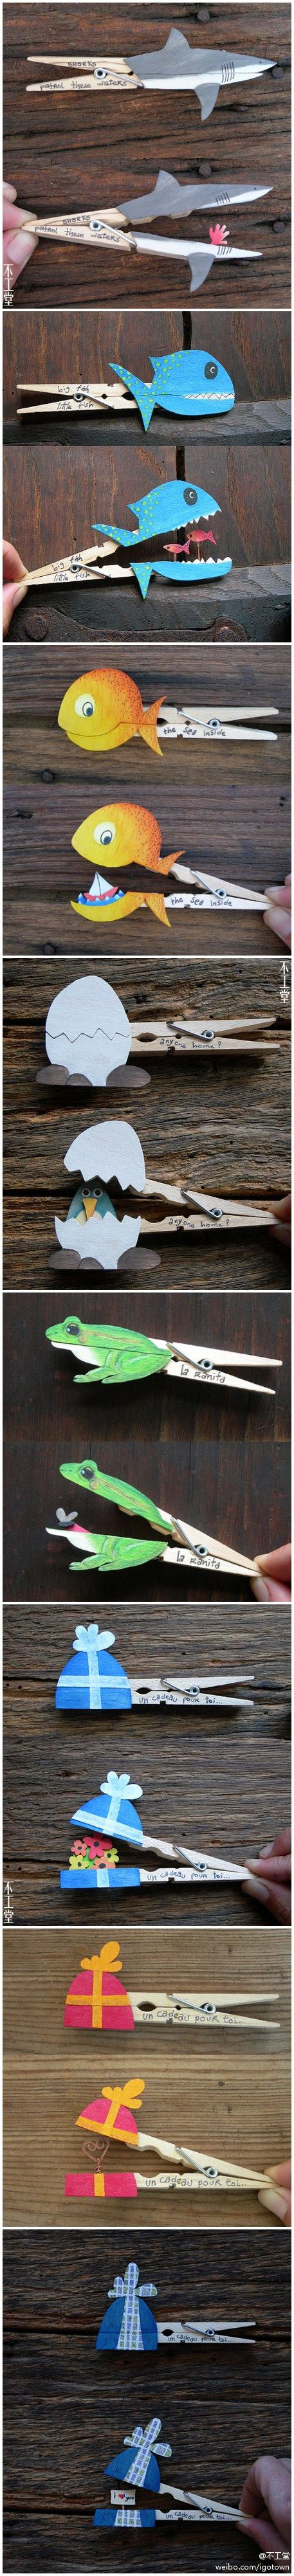 Muchas ideas para hacer con un simple perro de ropaCrafts Ideas, Funny Crafts, For Kids, Clothespins Crafts, Cute Ideas, Kids Crafts, Fun Crafts, Craft Ideas, Clothing Pin